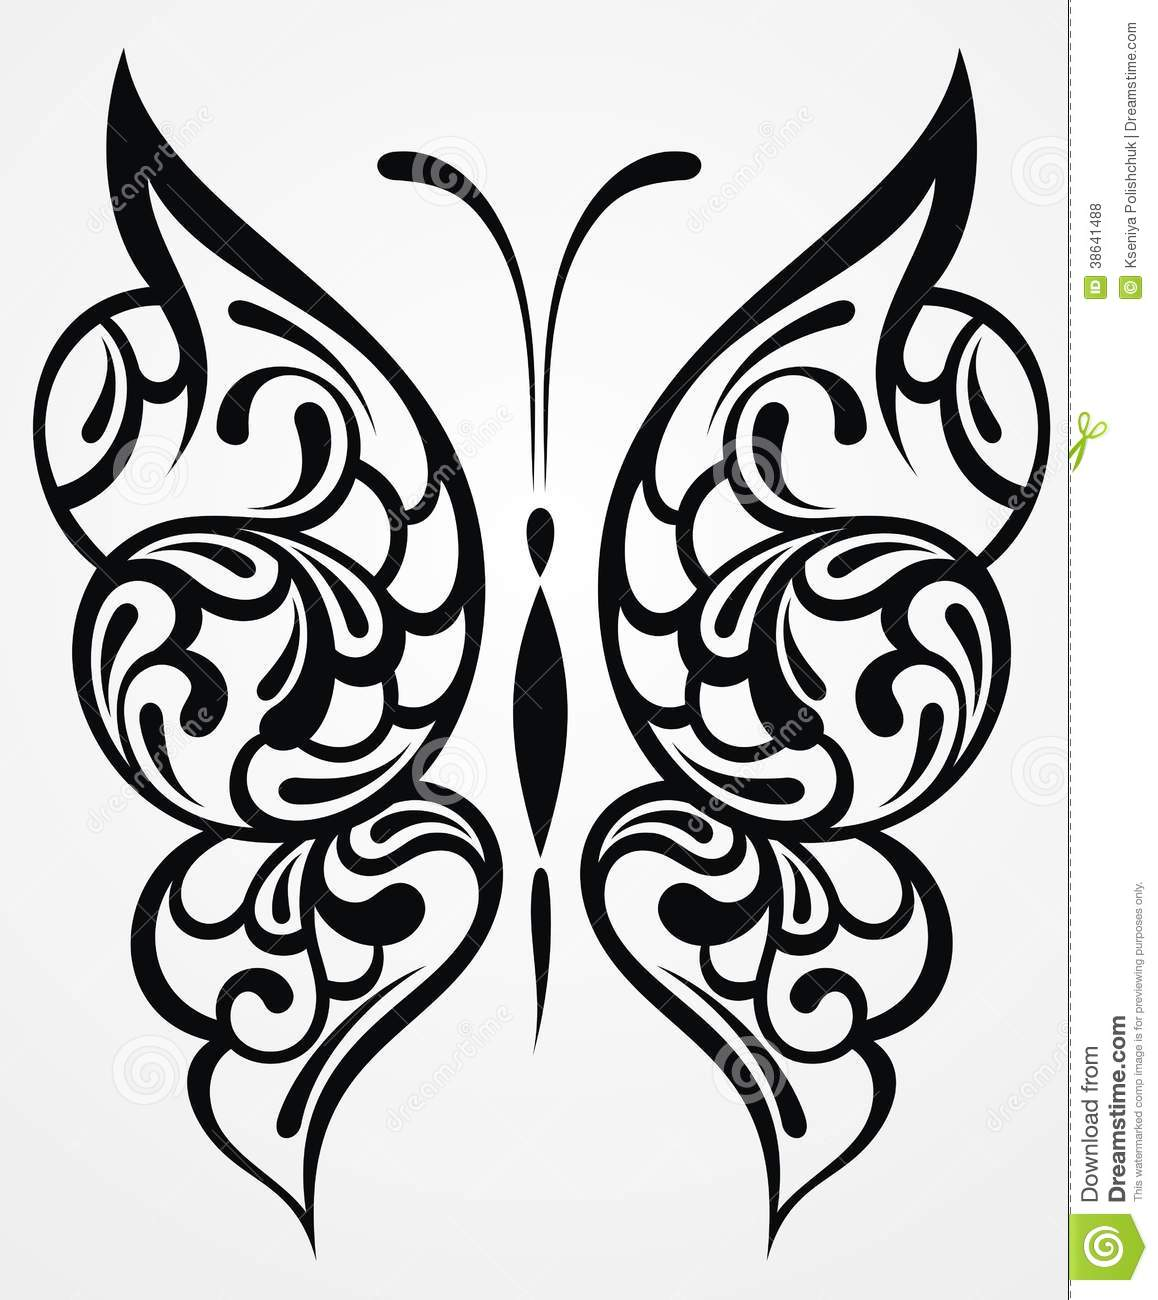 Tattoo Designs White Background: Black Butterfly. Tattoo Design Royalty Free Stock Photos